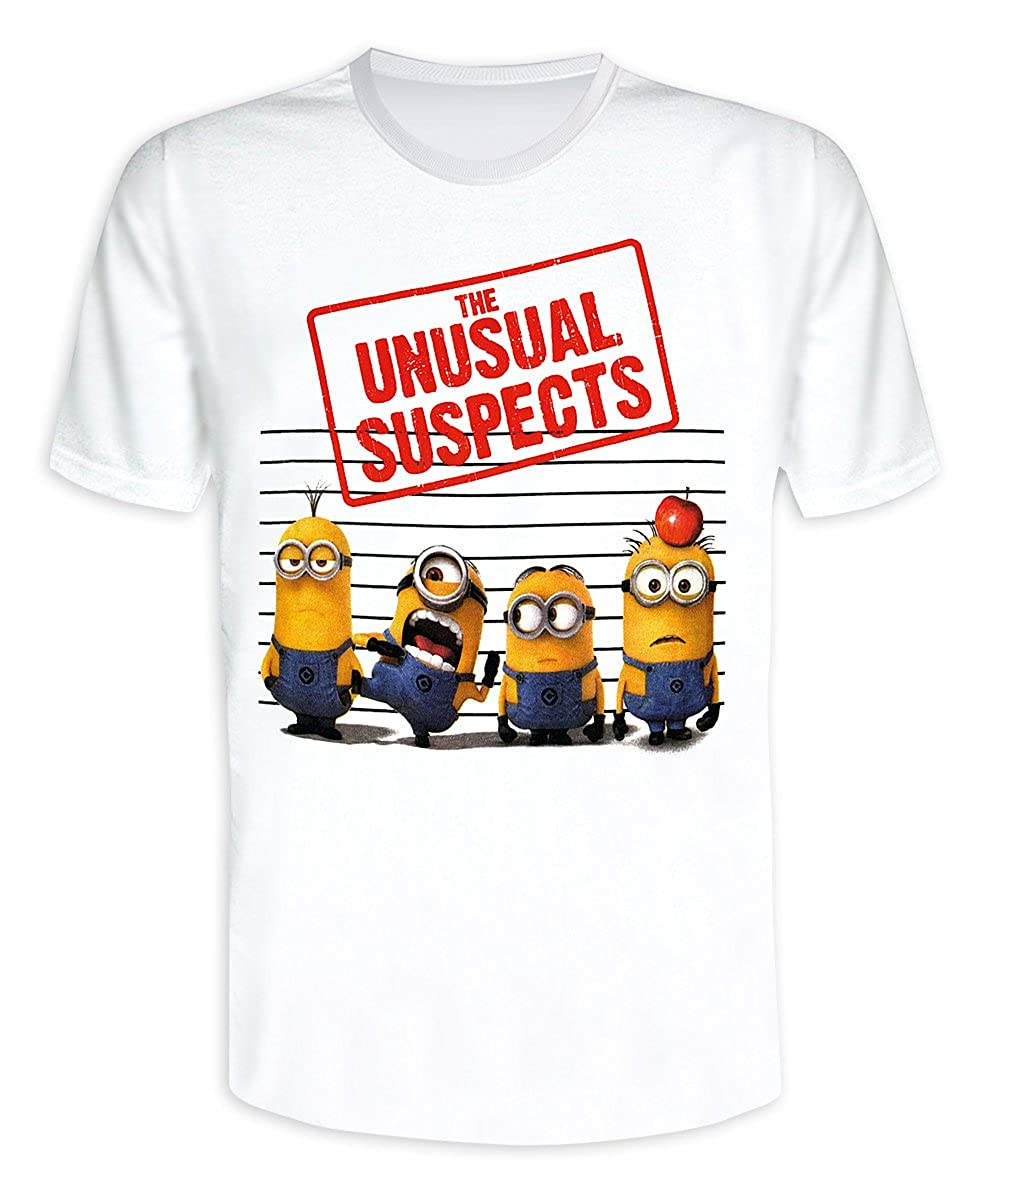 2b40a6bf0 Amazon.com: Despicable Me 2, T-Shirt The Unusual Suspects (Minions) (S):  Clothing